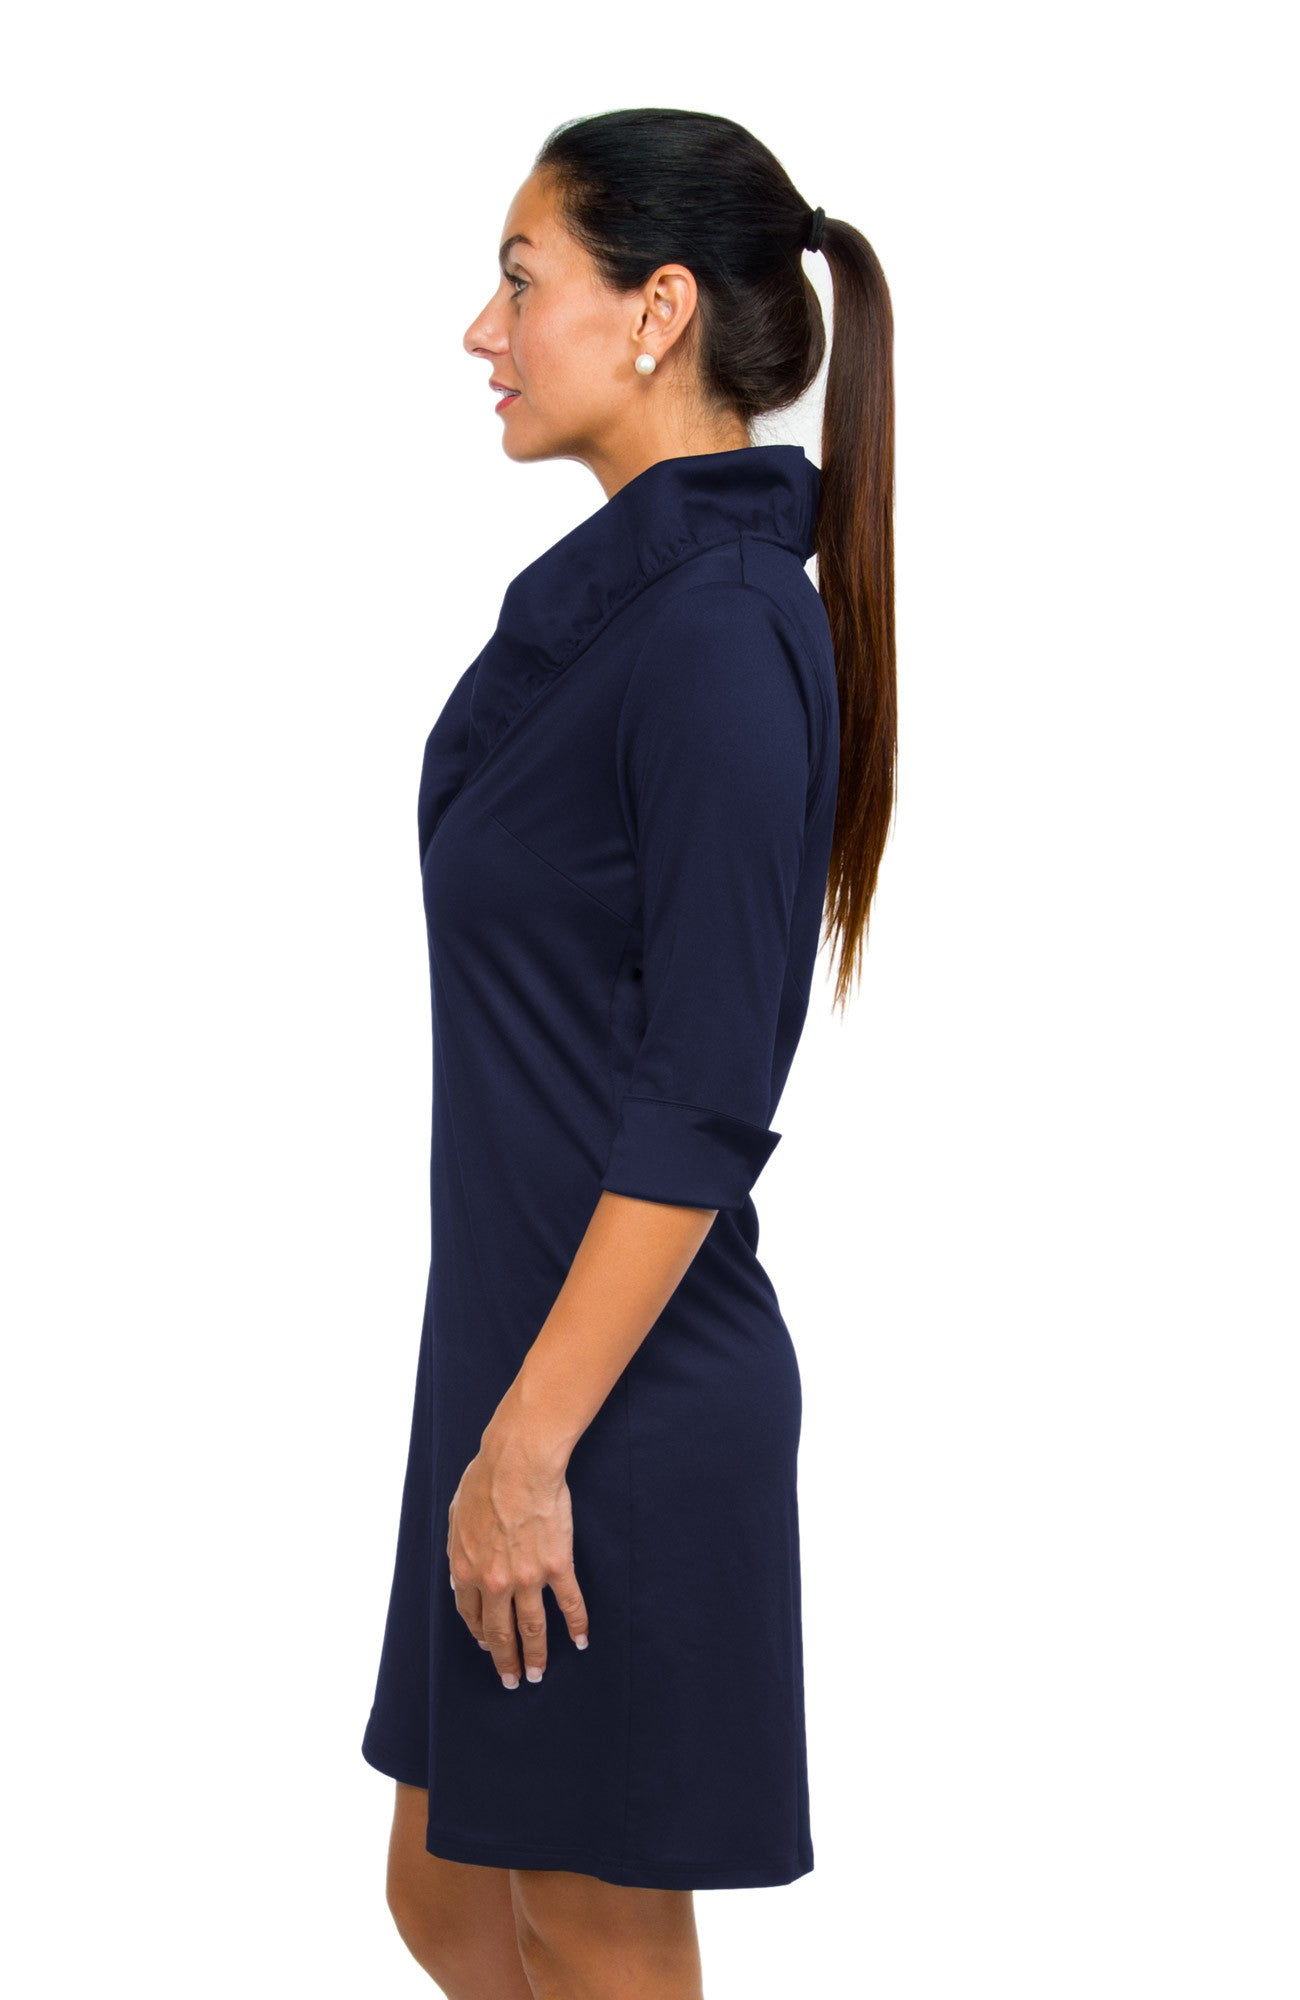 Gretchen Scott Ruff Neck Jersey Dress - Solid Navy by Gretchen Scott from THE LUCKY KNOT - 2